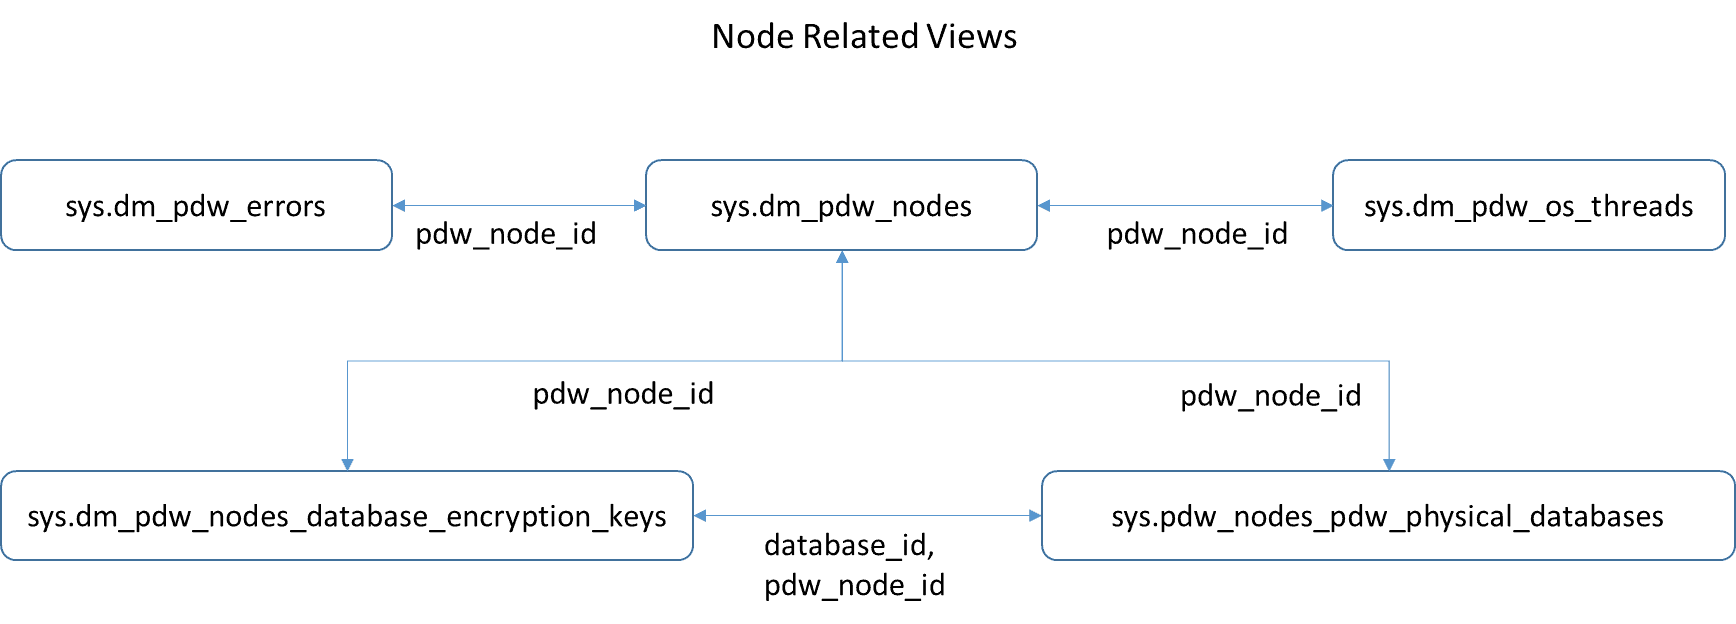 Node Related Views